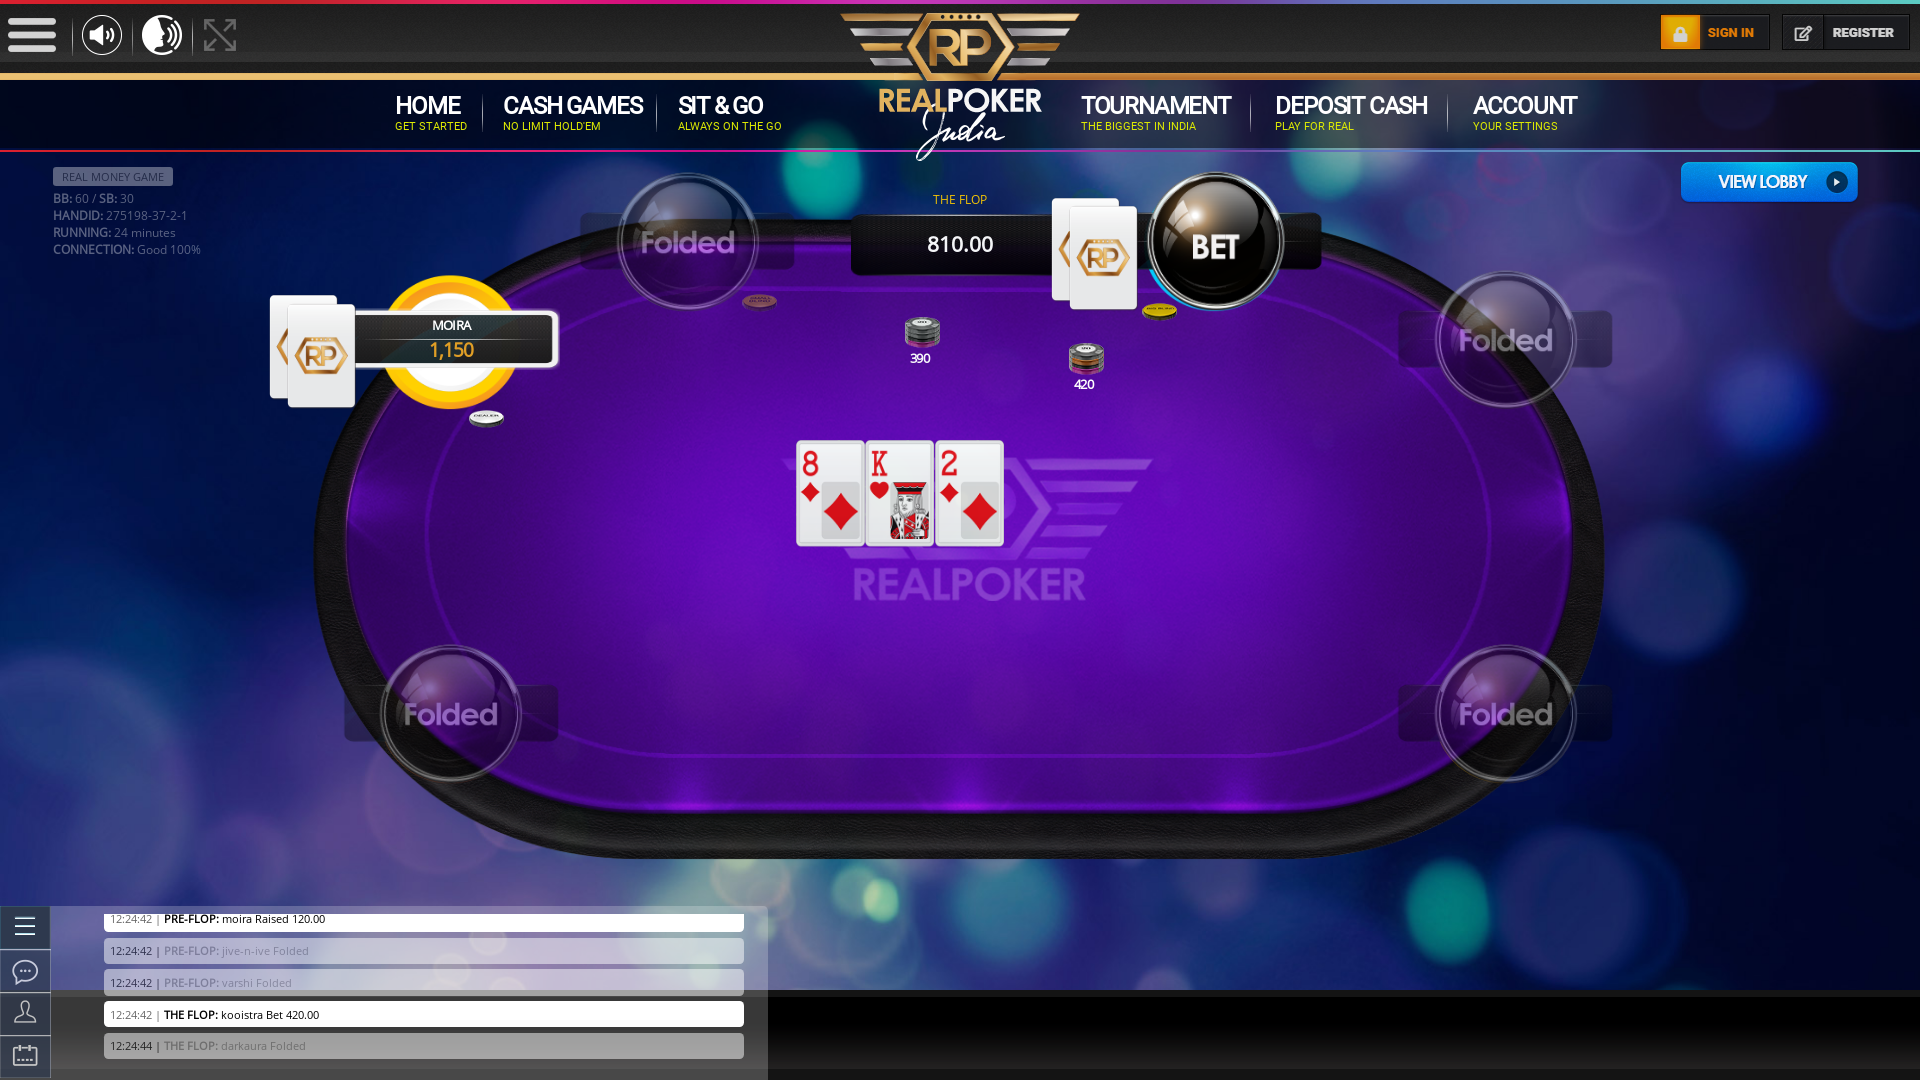 Indian online poker on a 10 player table in the 23rd minute match up